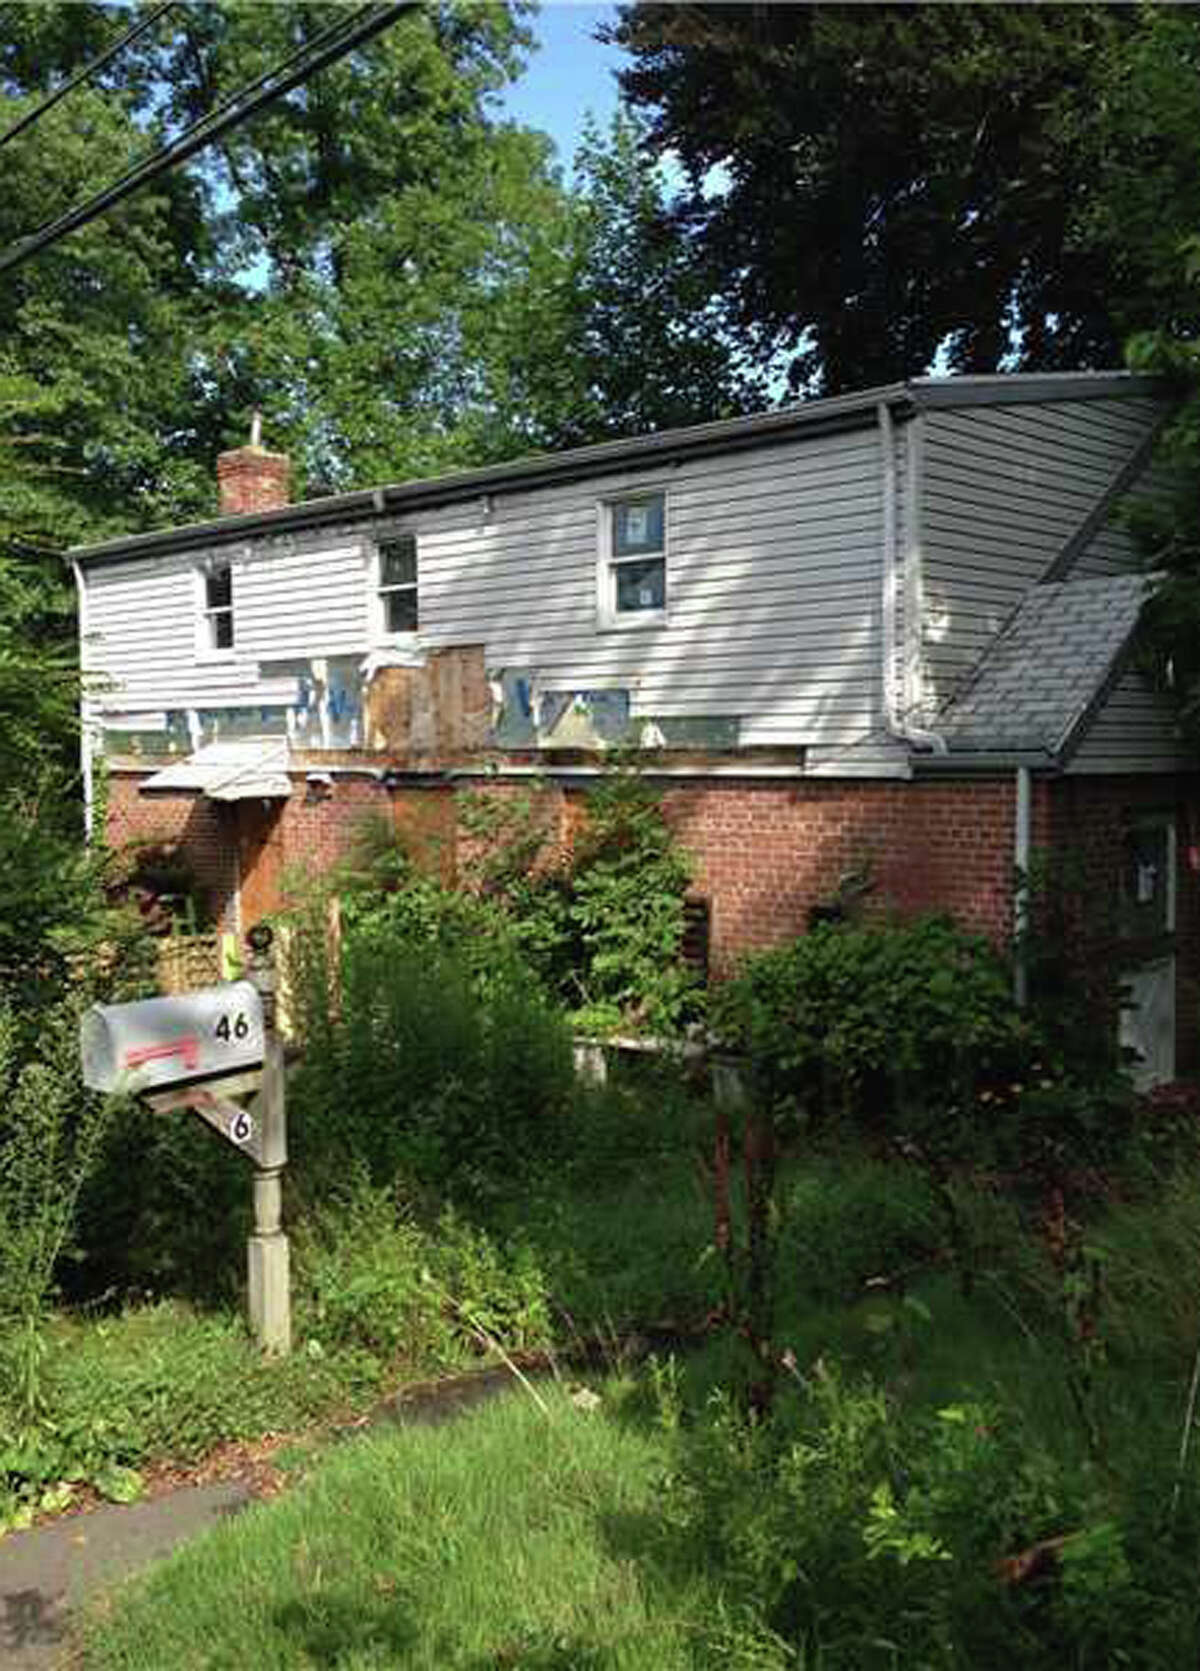 """The first of two """"Buys of the Week"""" from Ken Edwards is the property at 46 Havemeyer Lane, a fire-damaged 1947 brick colonial home, that sold for $387,500."""